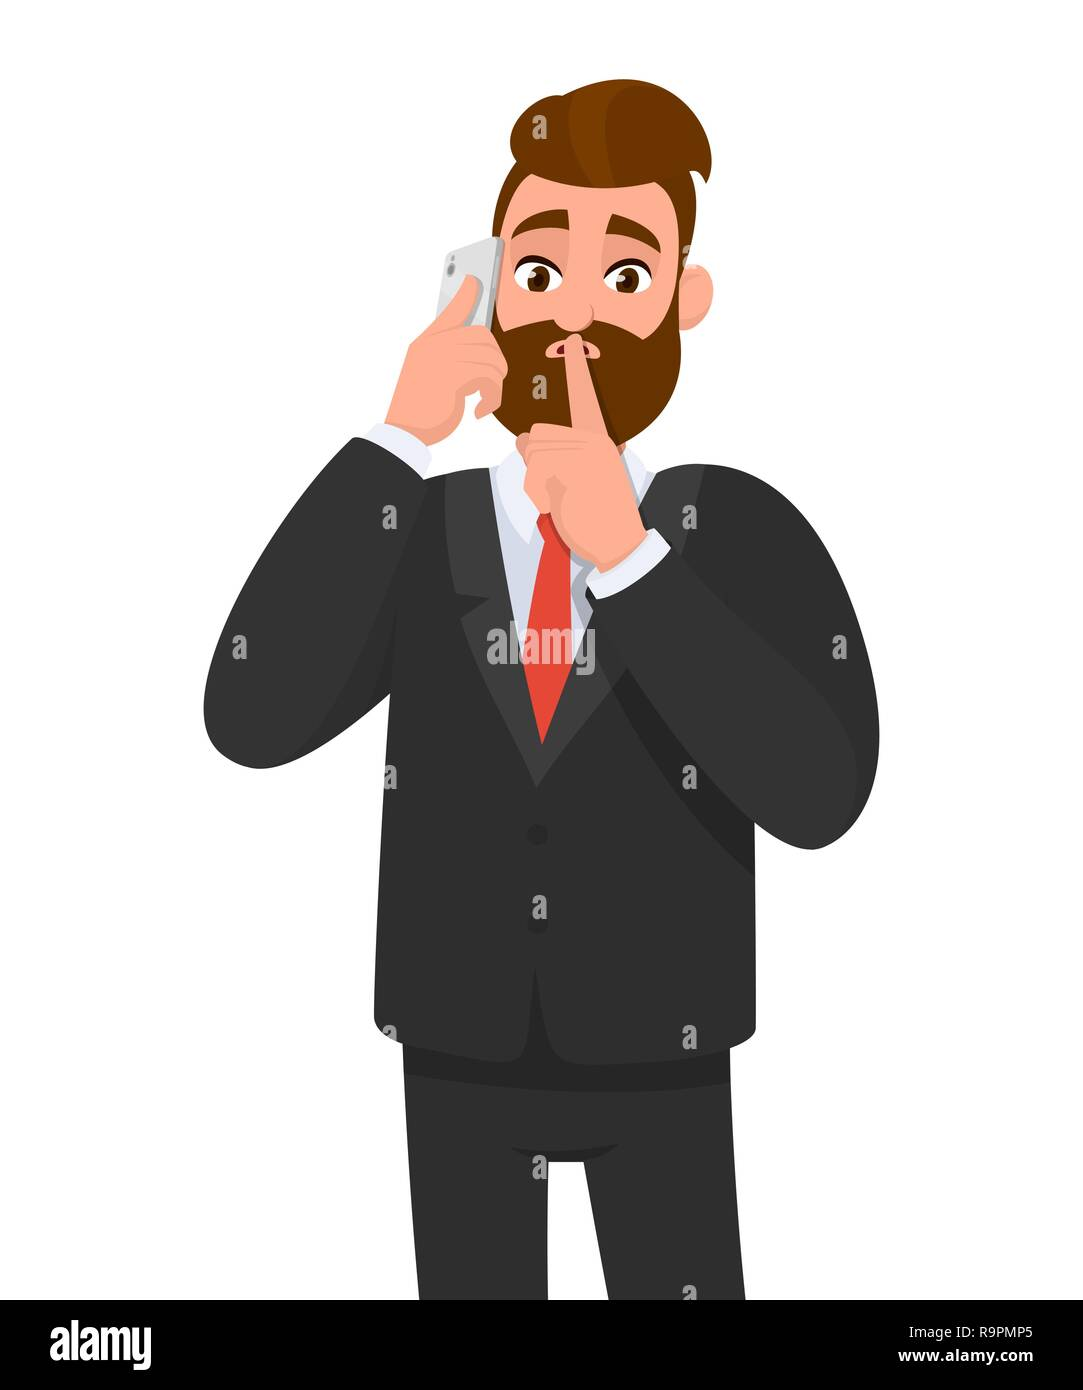 Businessman talking on the cell phone and asking silence. Shh. Keep quiet. Silence please! Silent. Human emotion and body language concept. - Stock Image